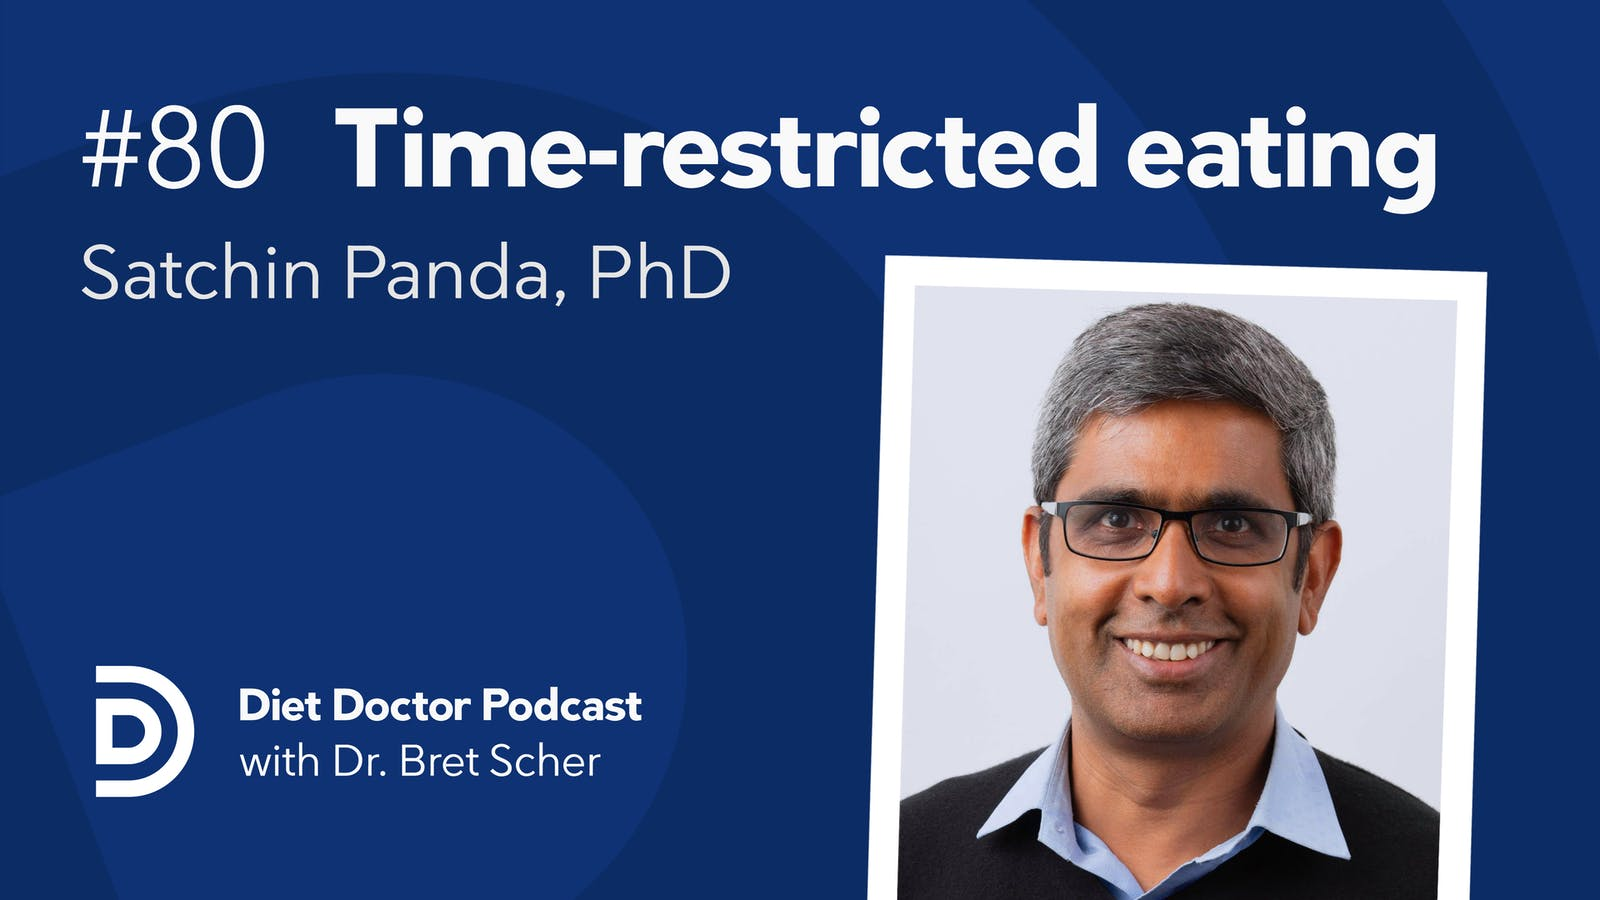 Diet Doctor Podcast #80 — The science of time-restricted eating